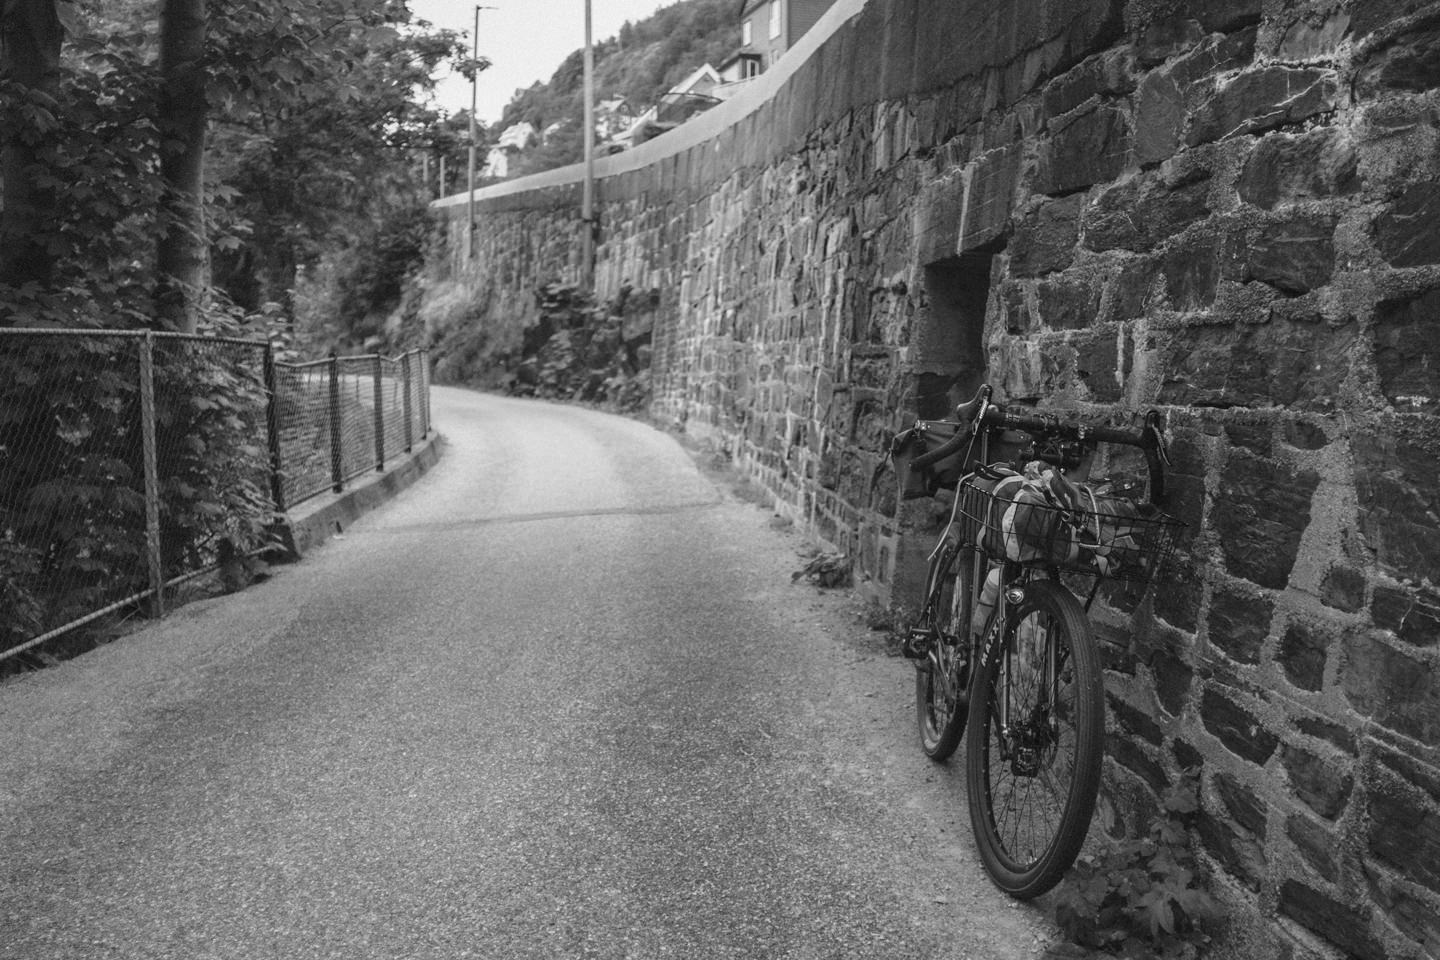 bicycle leaning against wall, seen from the front, in black and white